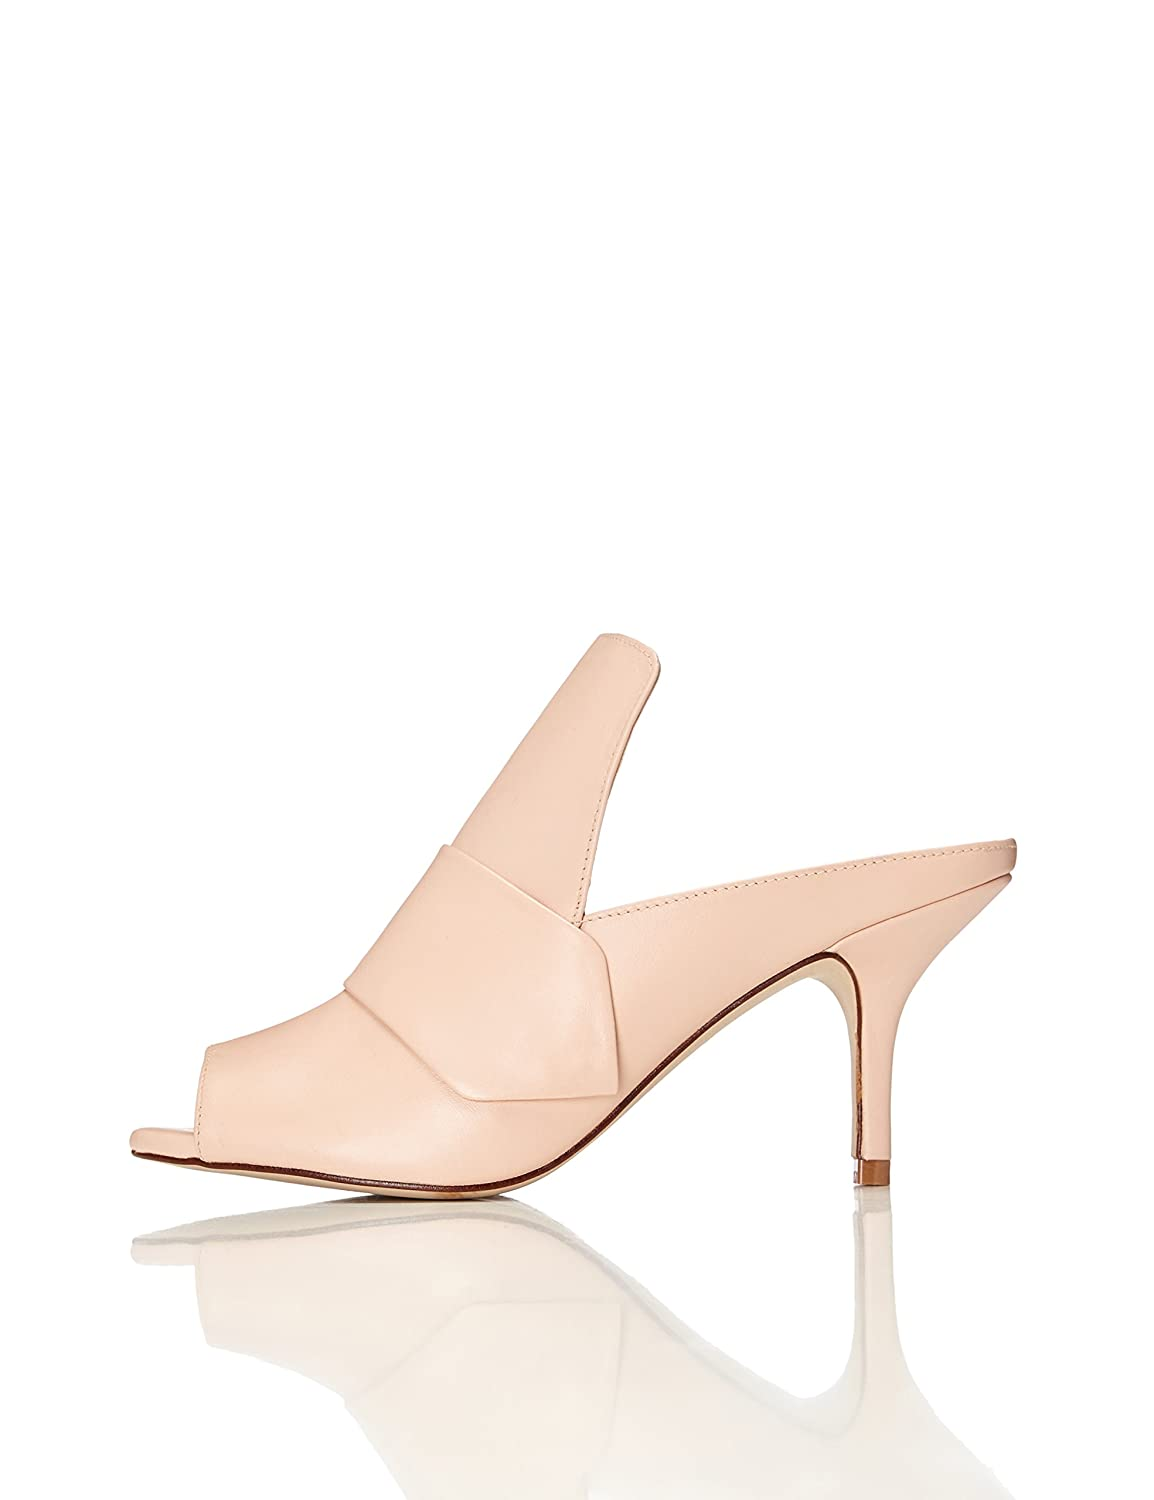 FIND Mules Talons Femme Mules B07G5ZGYG7 Rose FIND (Pink) 0c0f7df - latesttechnology.space